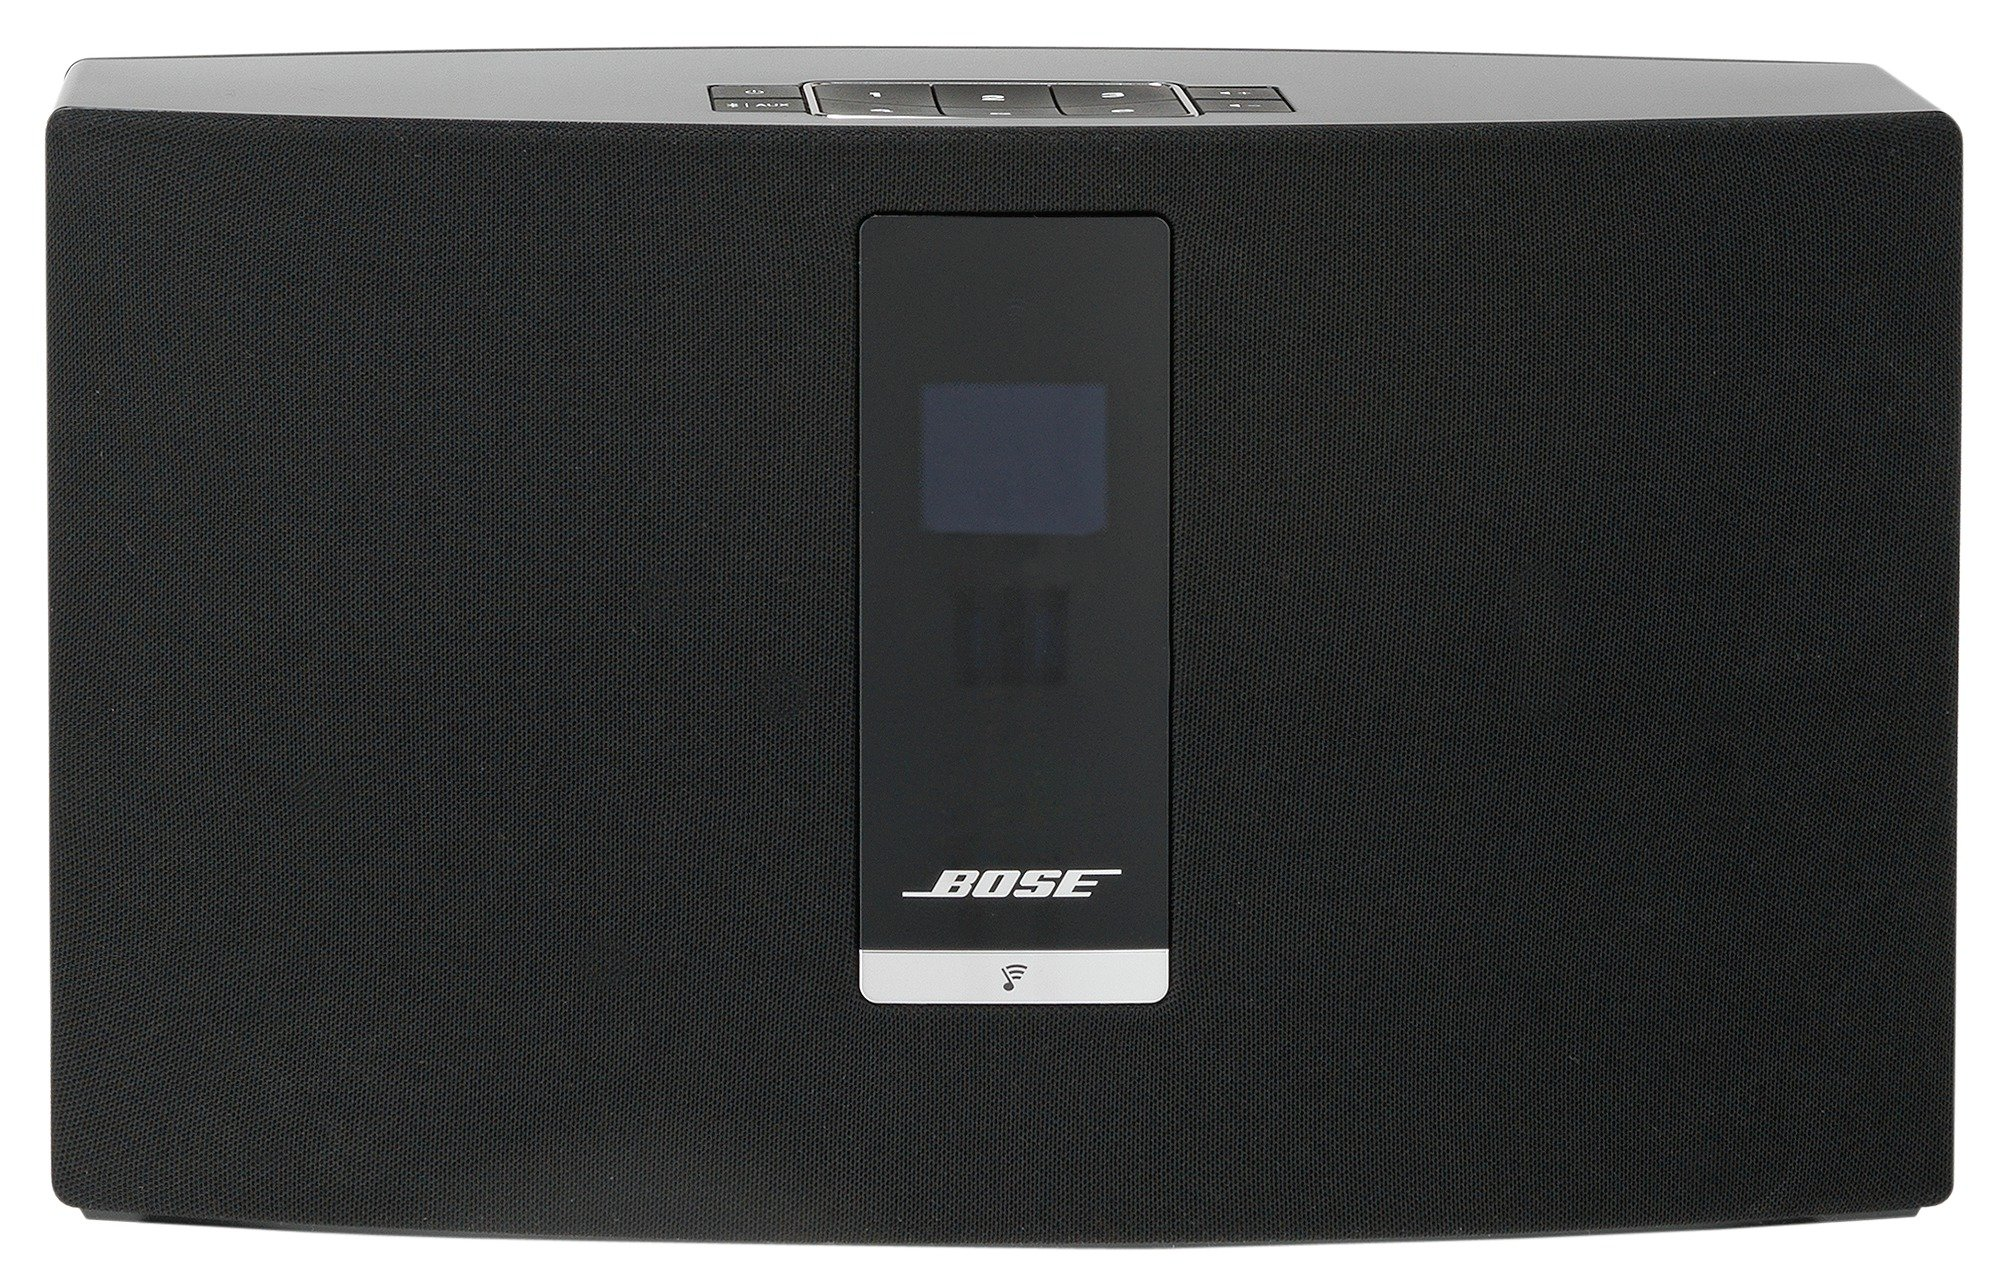 bose 20 soundtouch. click to zoom bose 20 soundtouch o